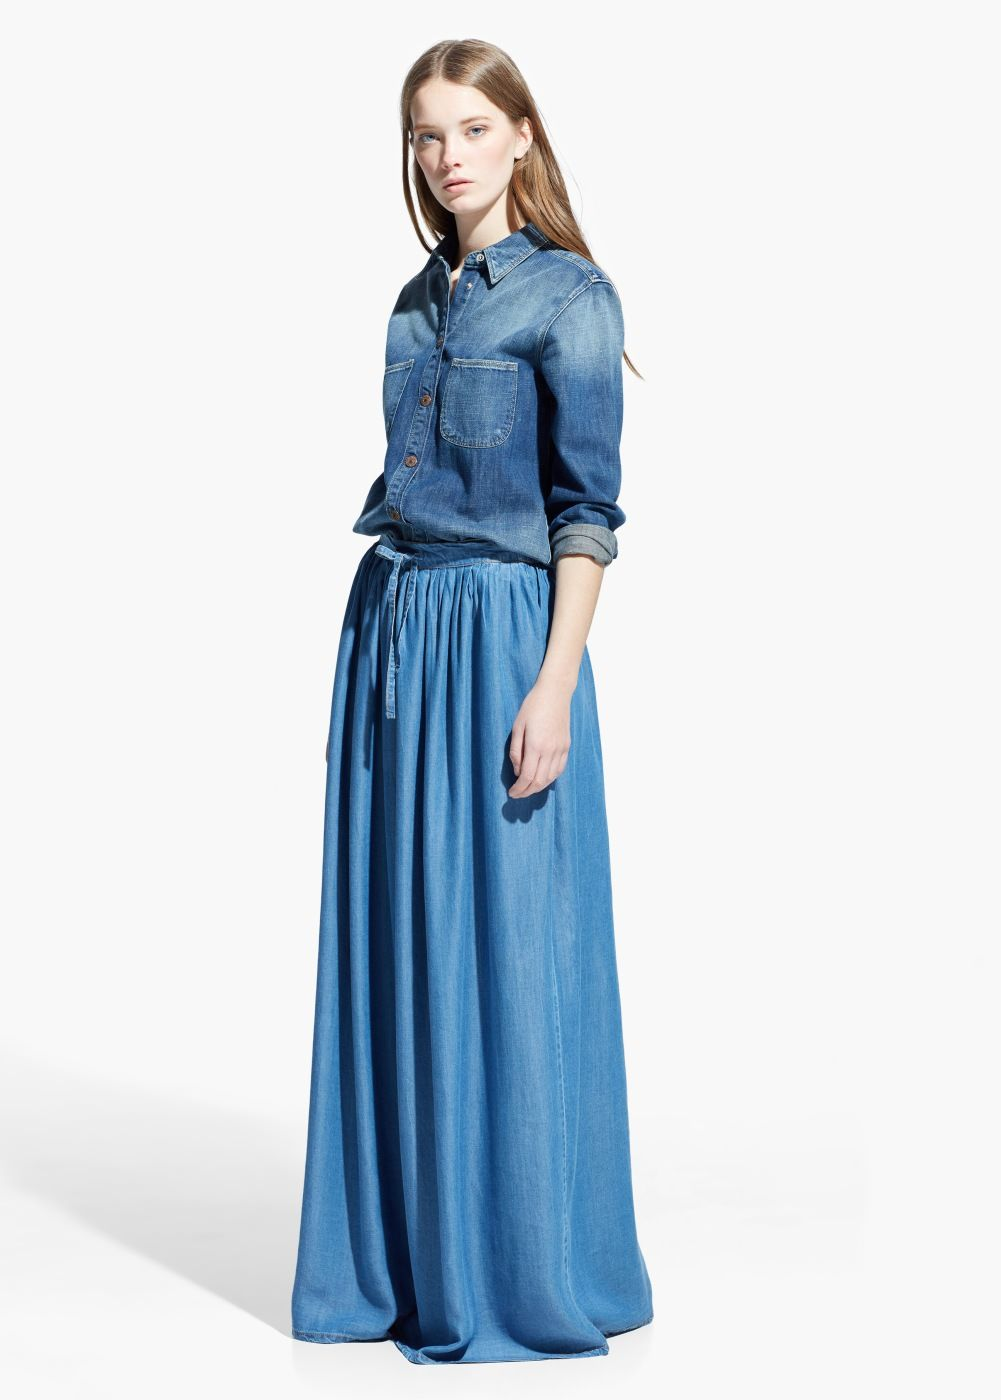 Long Denim Dresses And Skirts - Dress Ala